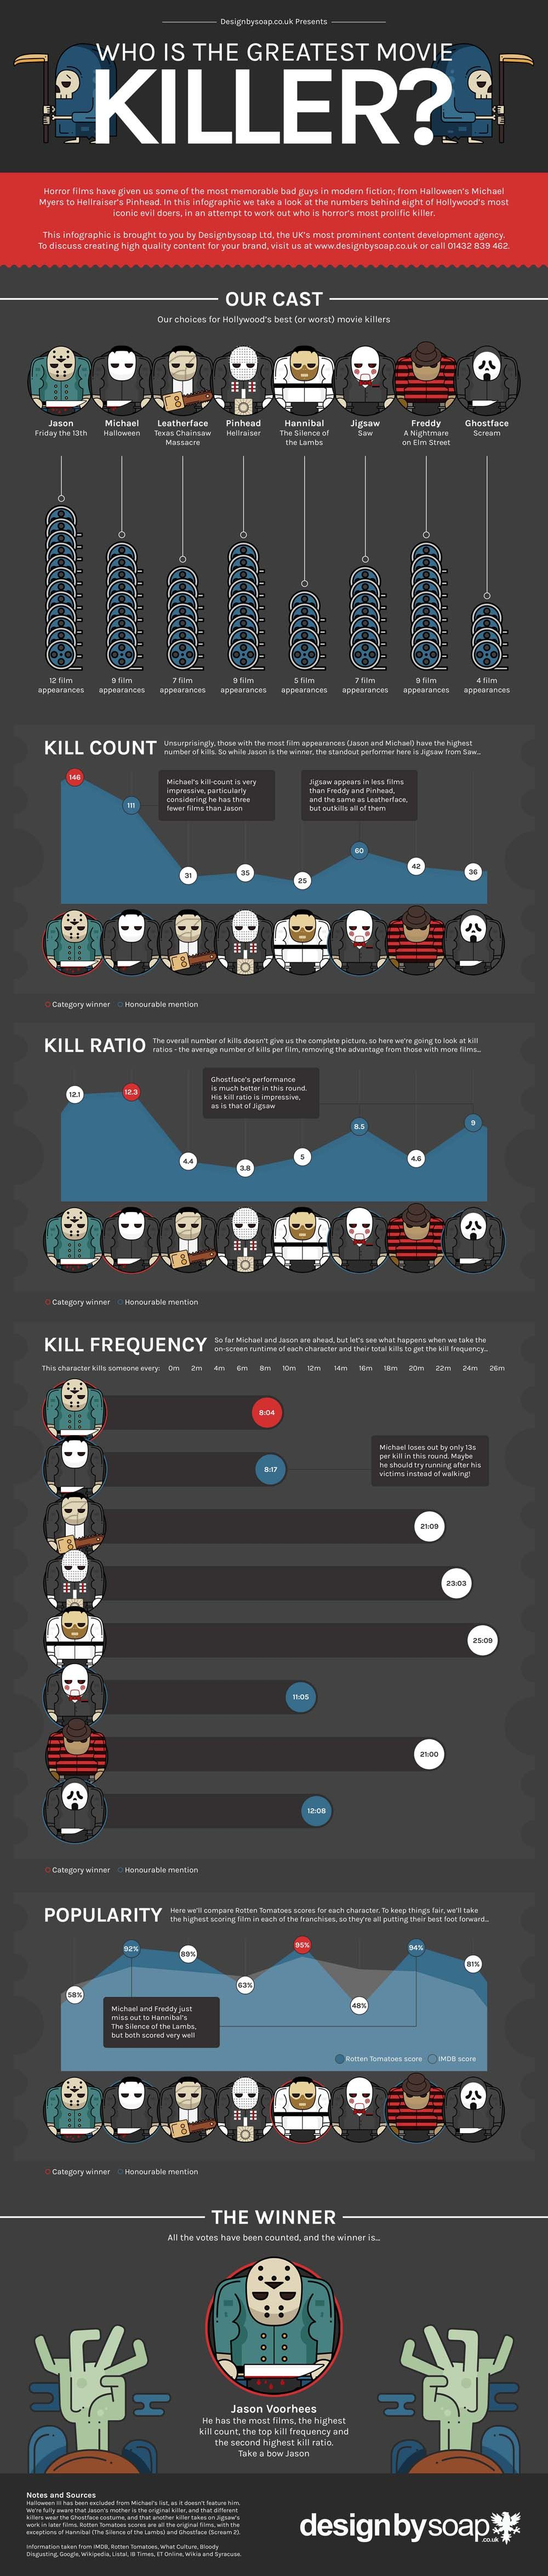 Who Is The Greatest Movie Killer? #Infographic